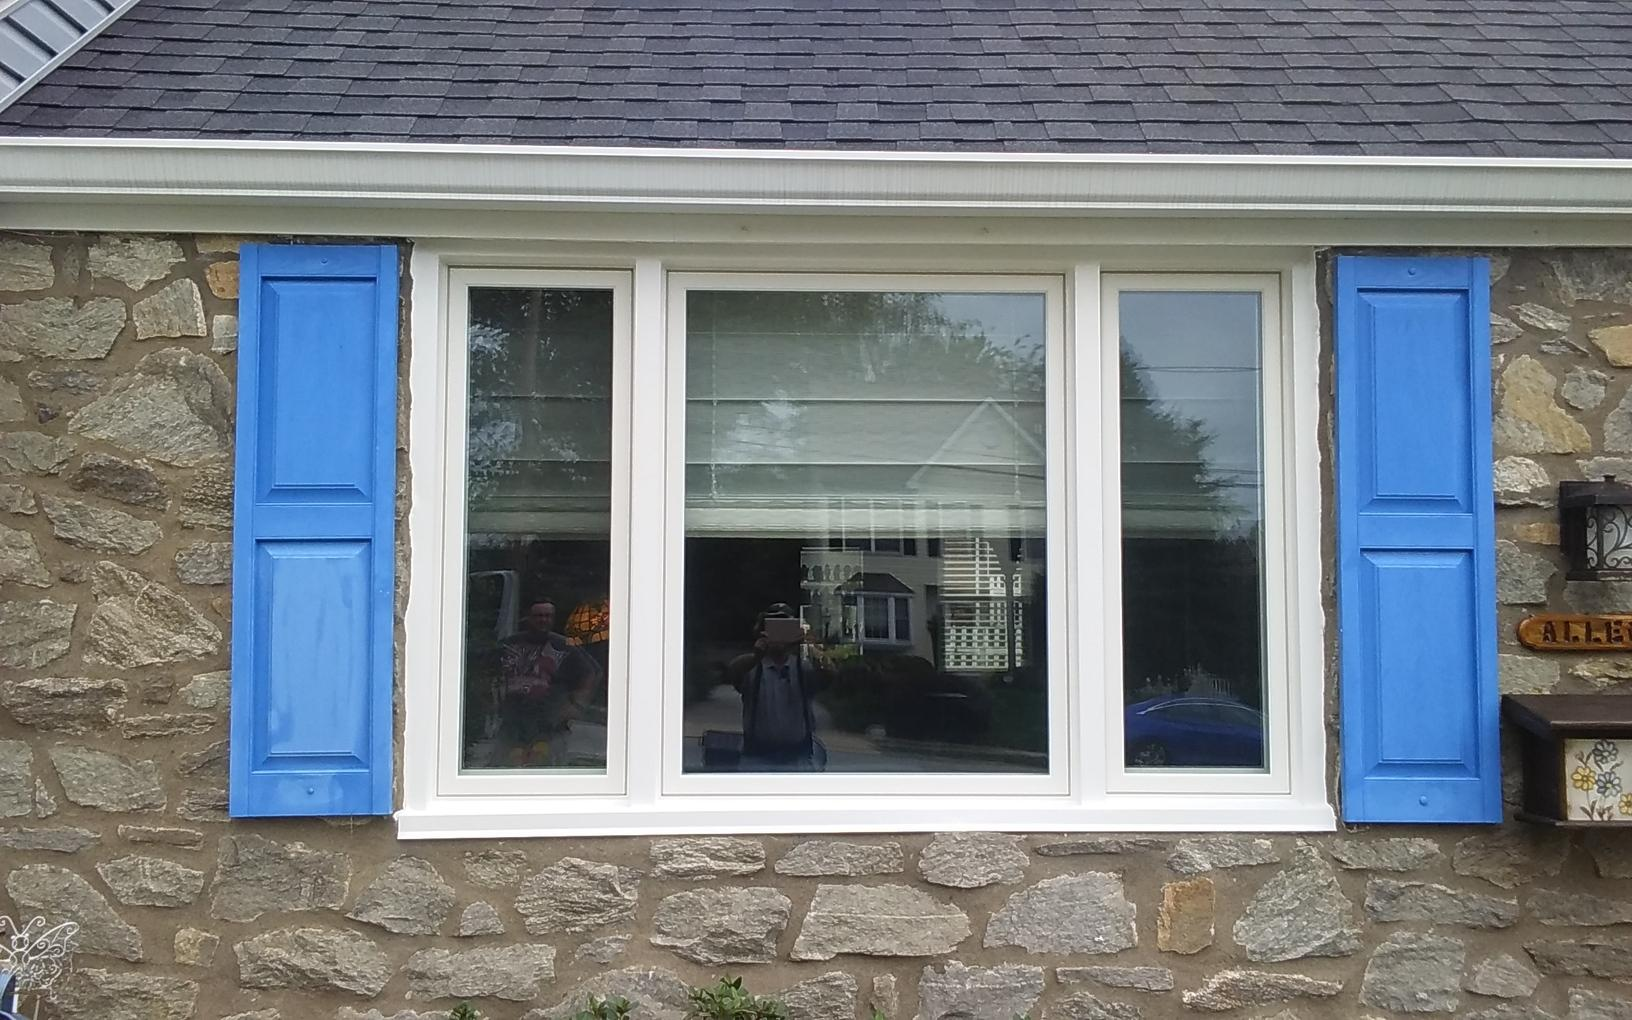 Marvin Infinity Window Installation in Springfield, PA - After Photo